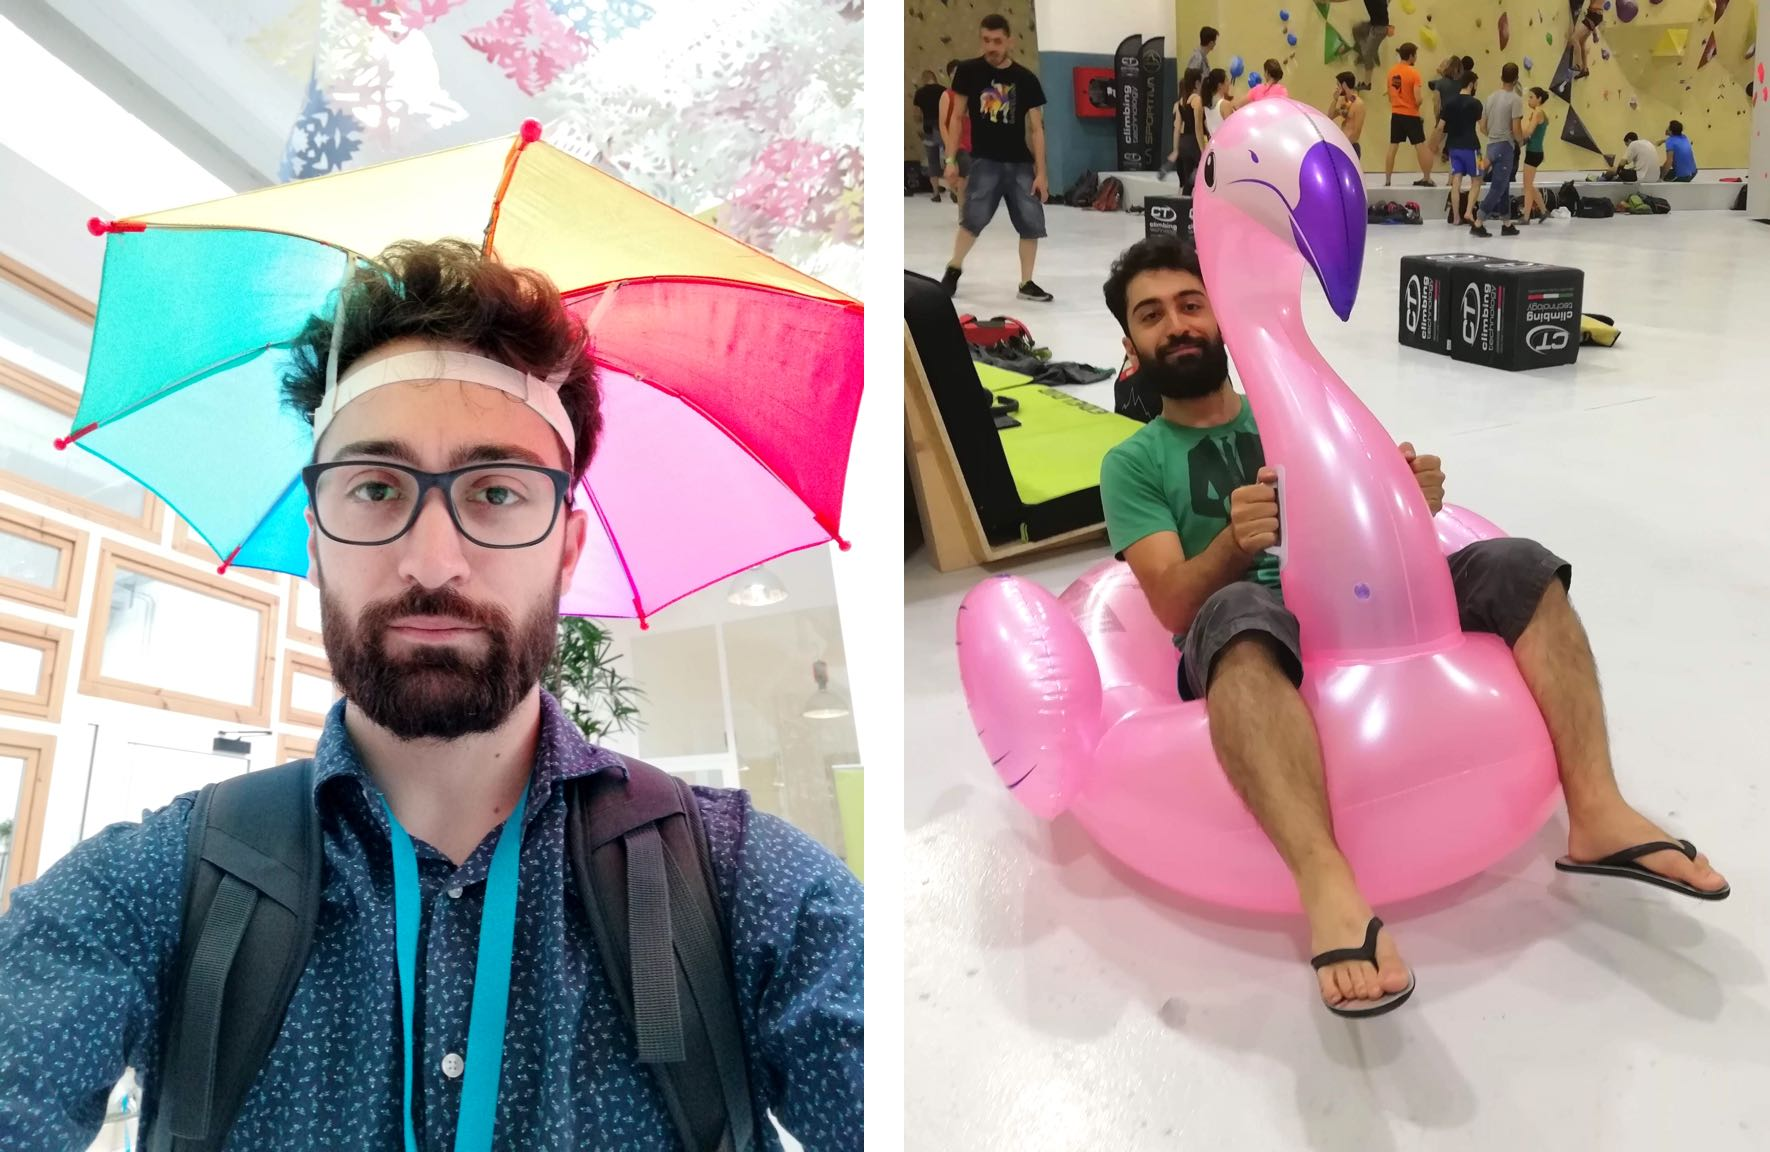 There are two photos. On the left side there is Antonio taking a selfie with a colorful umbrella hat. On the right side, Antonio is sitting on an inflatable Flamingo.